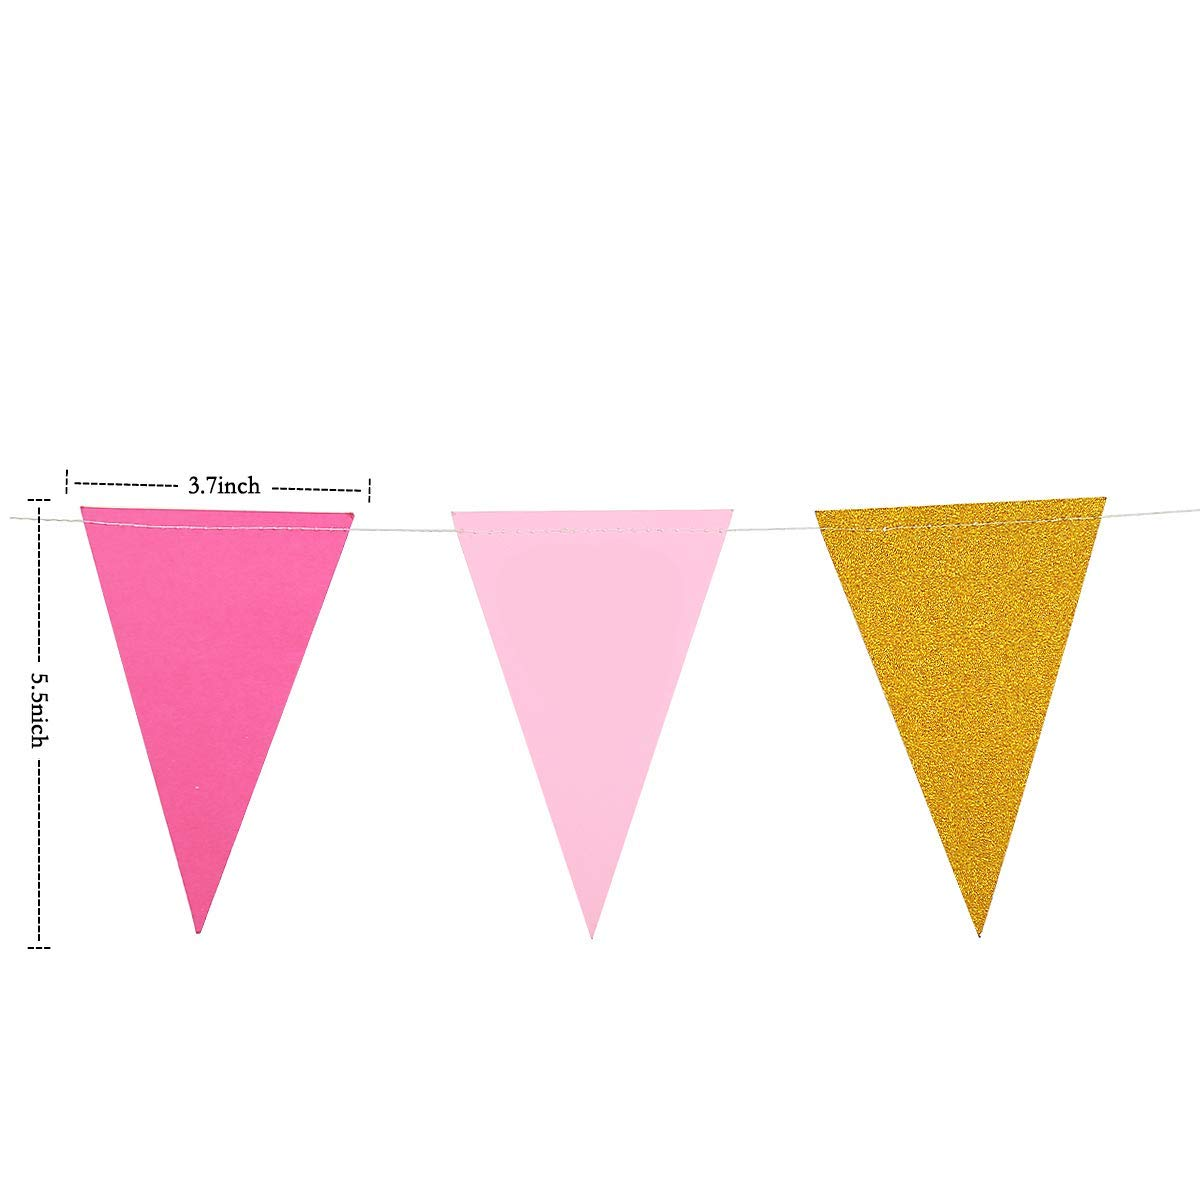 Gold+Pink+Rose 30 Feet Vintage Glitter Paper Triangle Flag Bunting Pennant Banner for Wedding Anniversary Engagement Girls Birthday Party Decorations